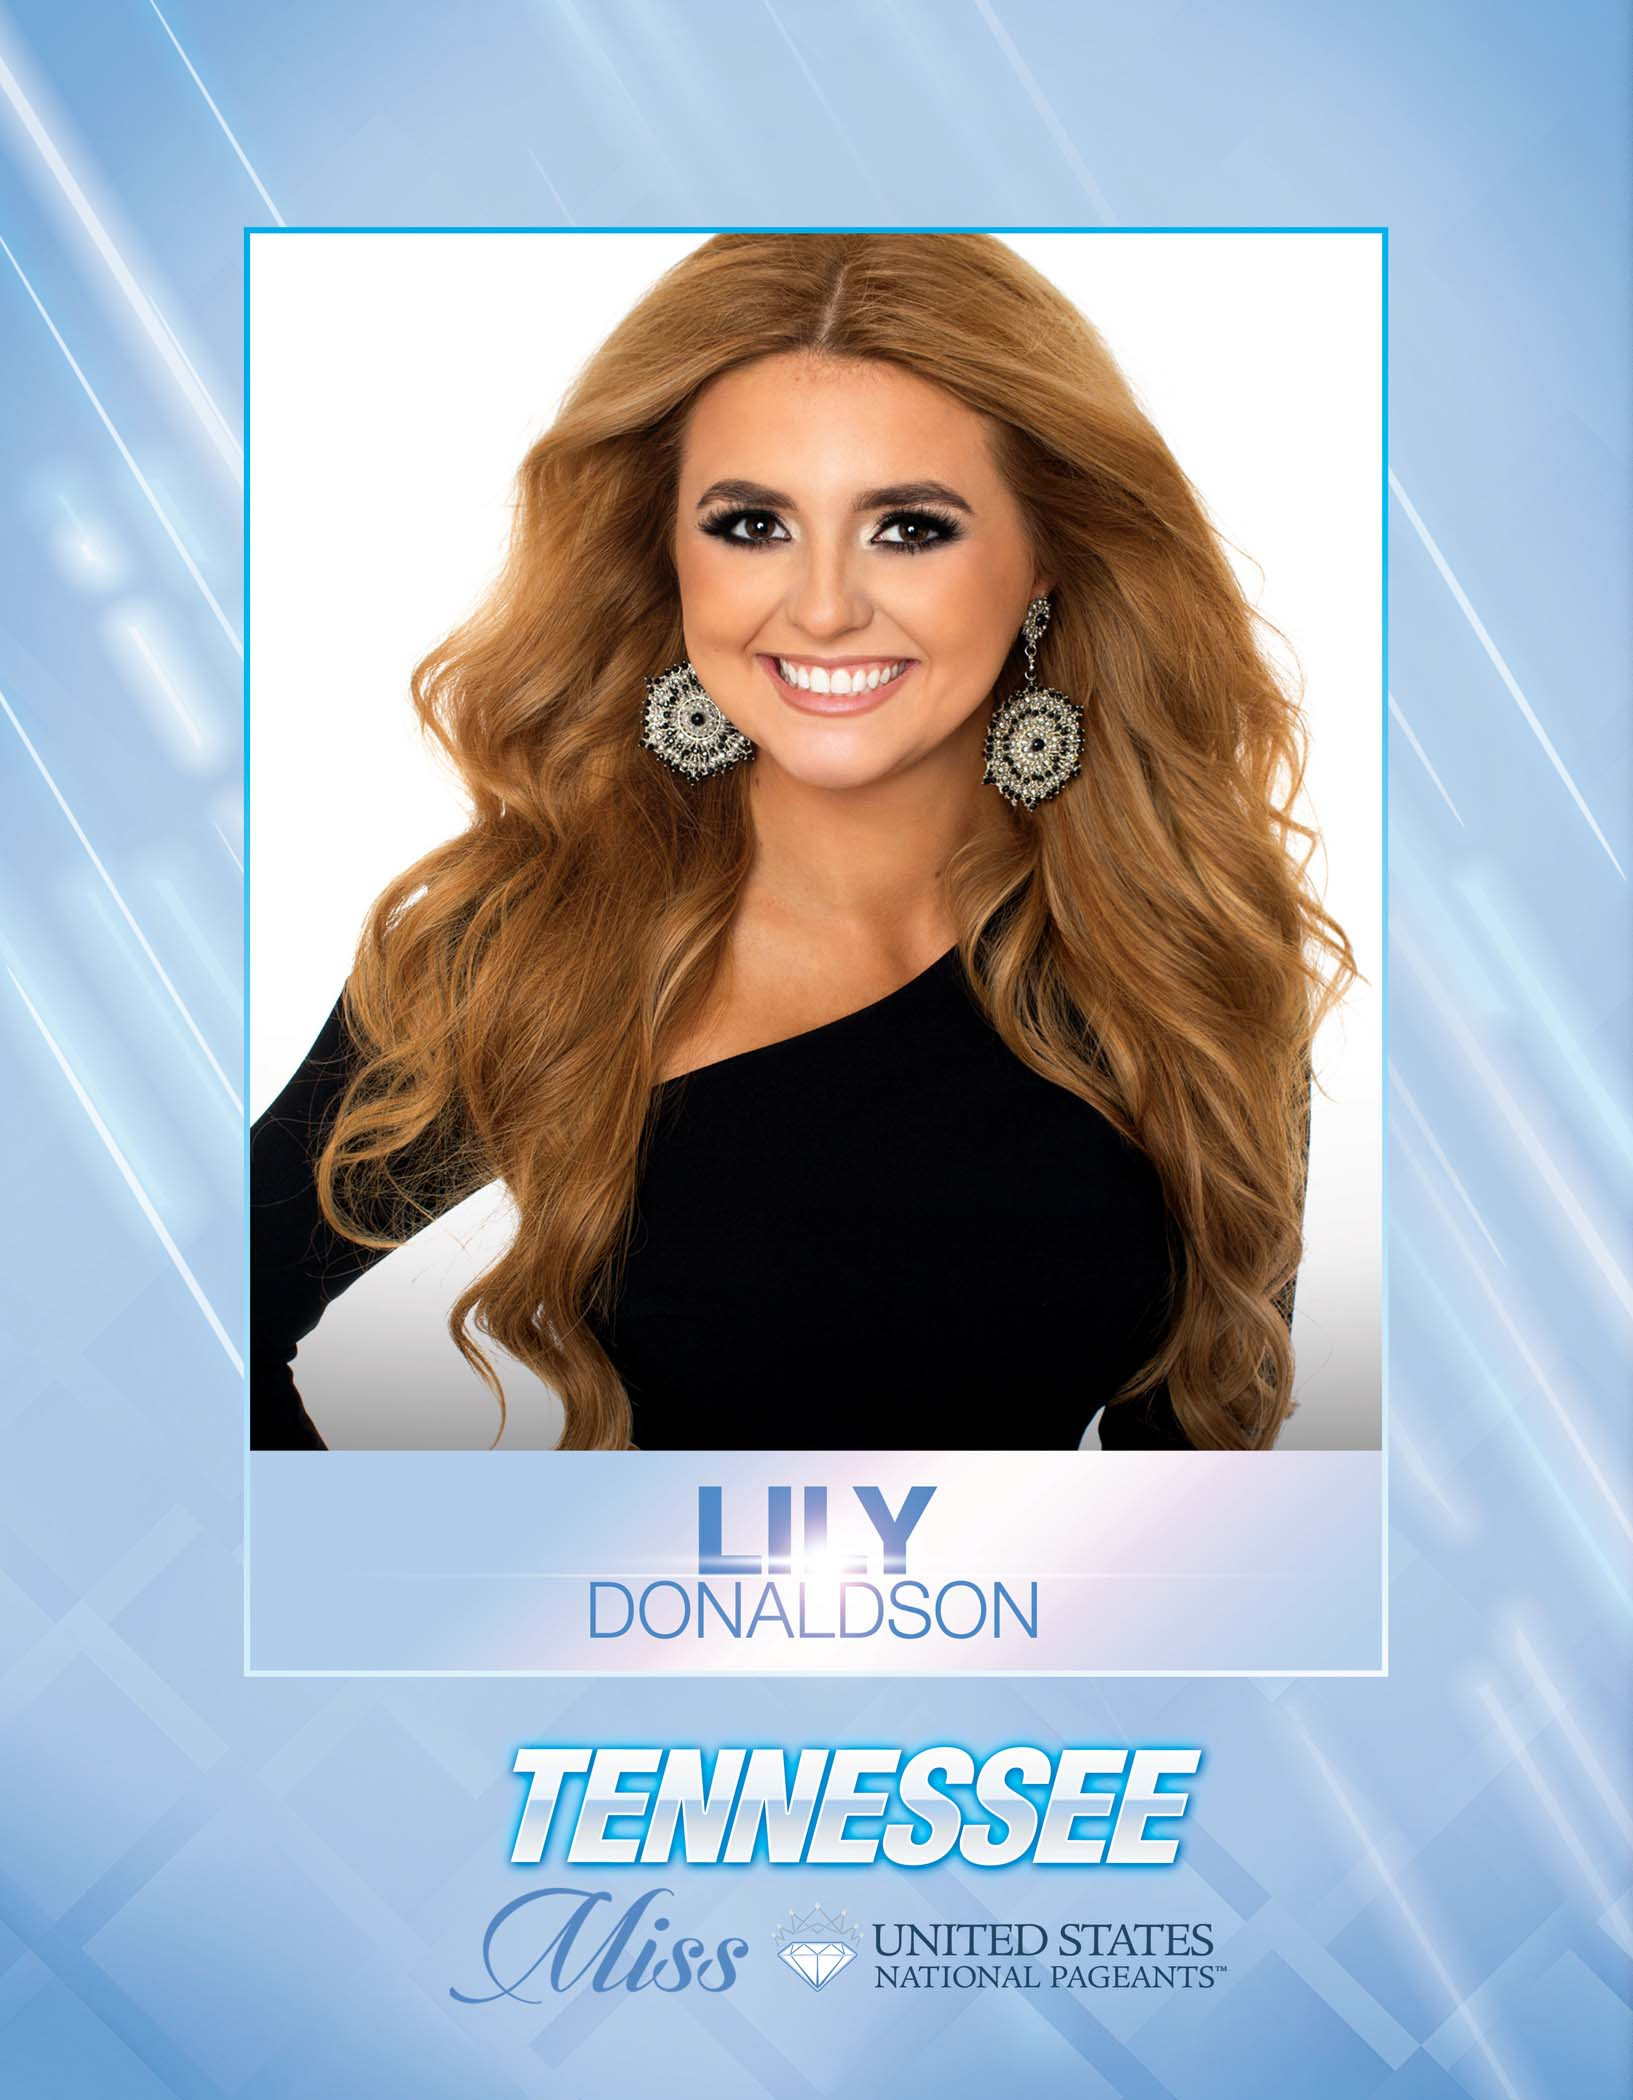 Lily Donaldson Miss Tennessee United States - 2021